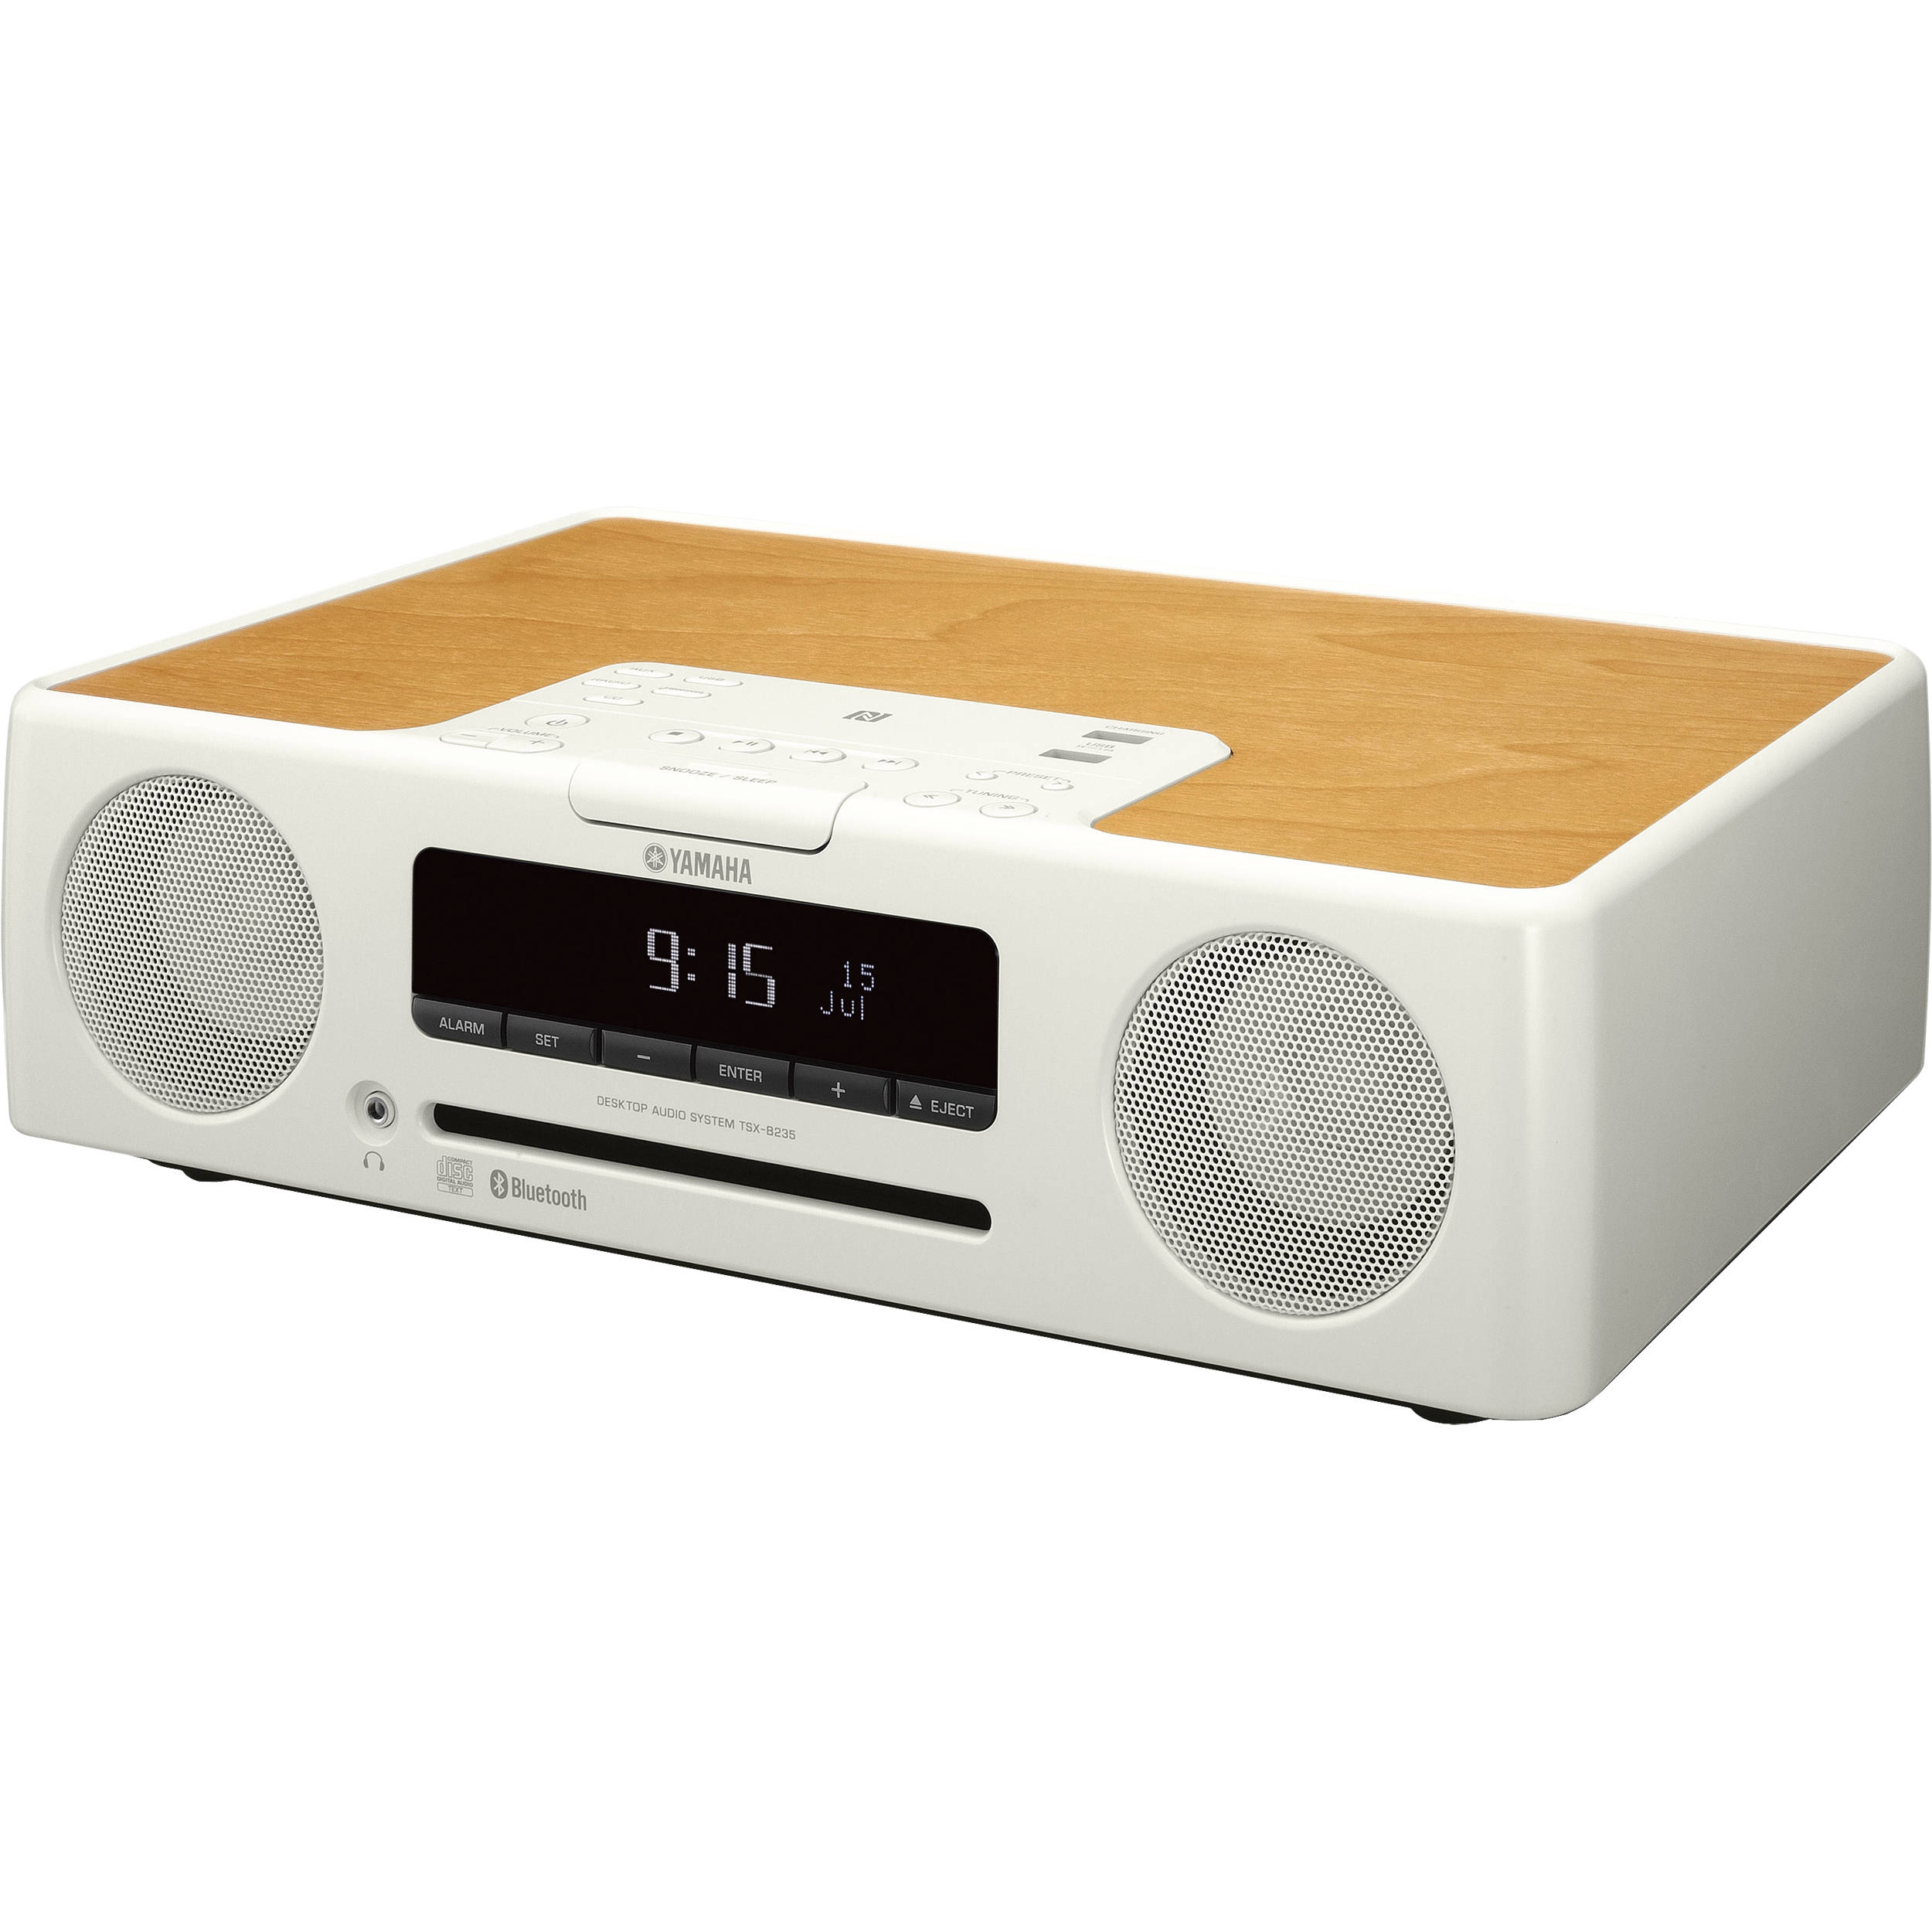 Sony icfc1tblack dual alarm clock radio moreover Groove Gv Ps210 Sr together with 301779446838 also Product product id 74 in addition Yamaha tsx b235wh tsx b235 desktop audio system. on tabletop radio with cd player